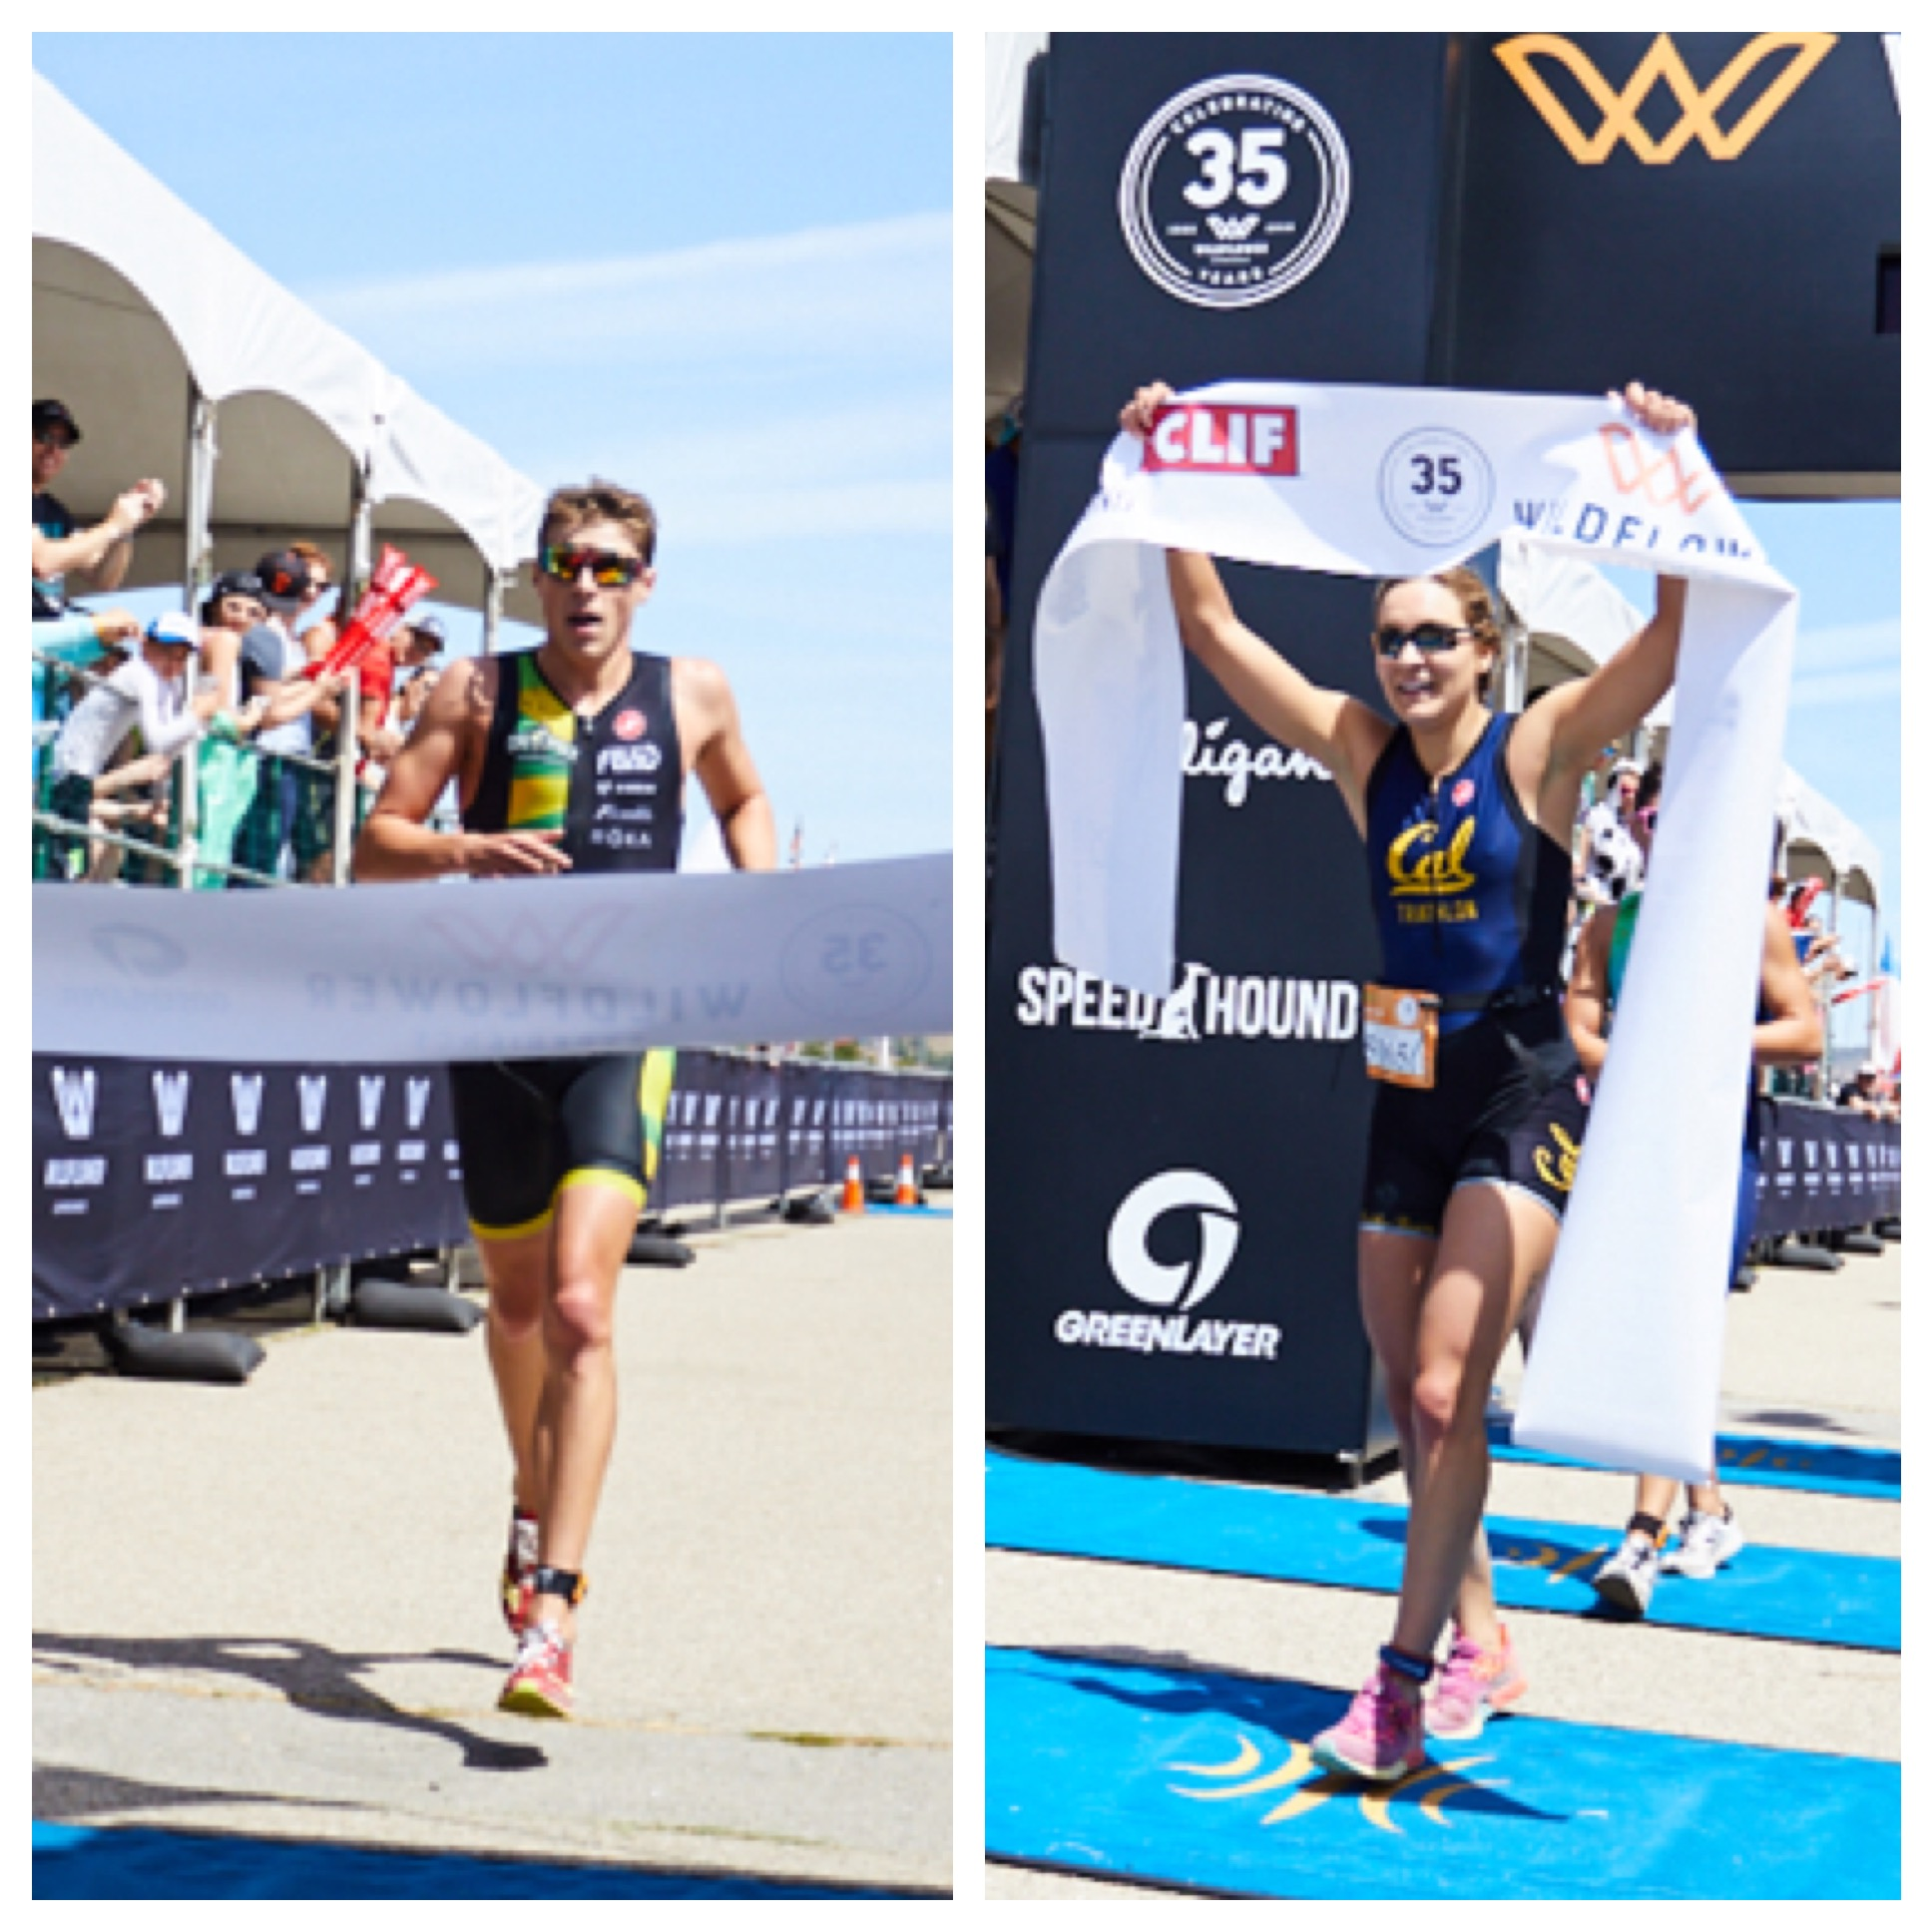 Kevin Jervis and Katherine Hoolihan Win 2018 Wildflower Experience Triathlon Collegiate Race